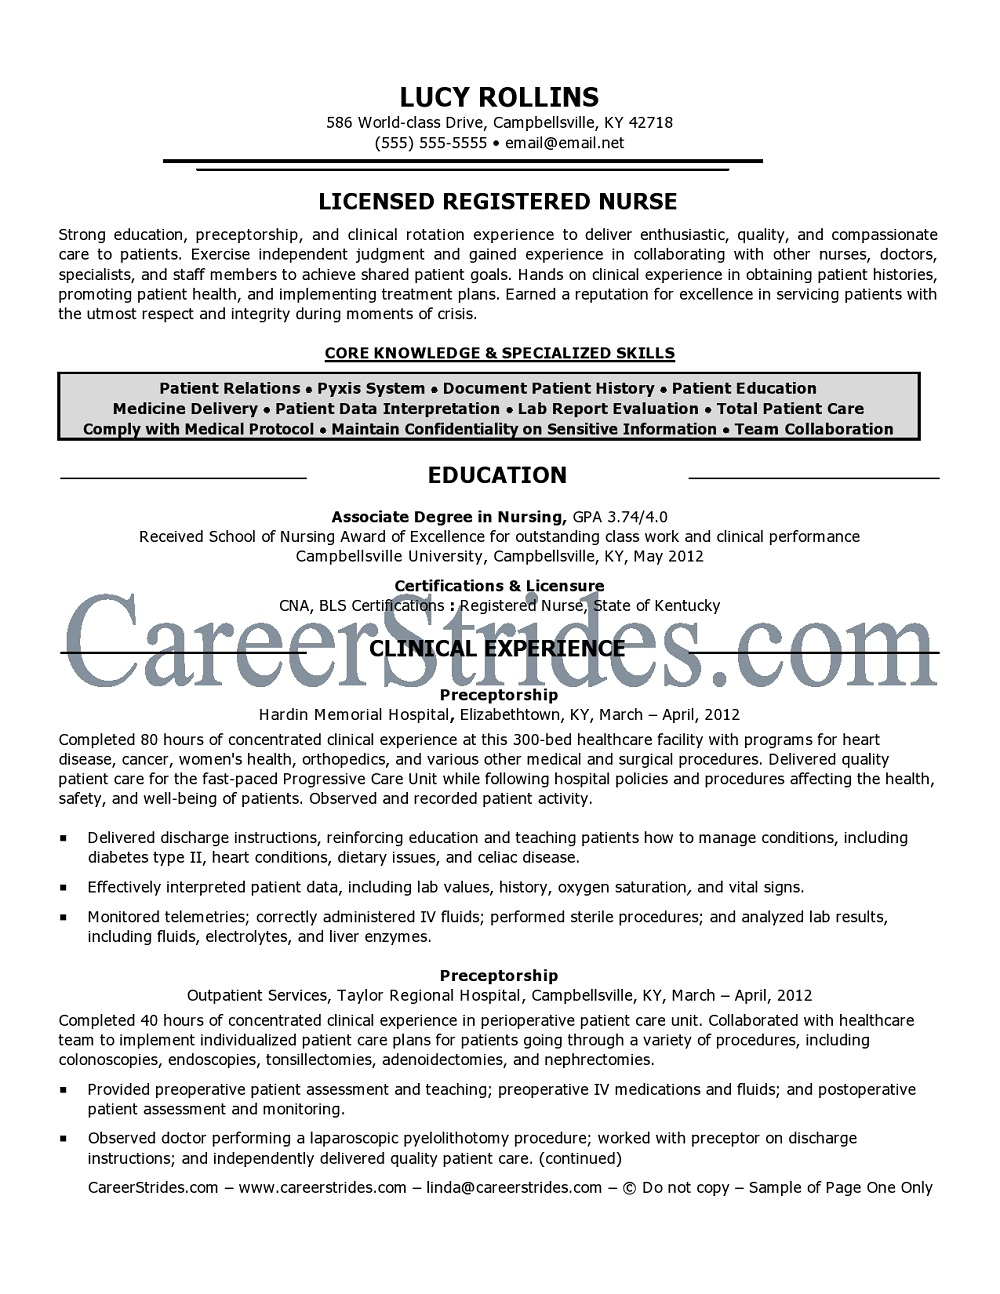 nurses resume sample professional resume examples nursing quotes quotesgram professional resume examples nursing quotes